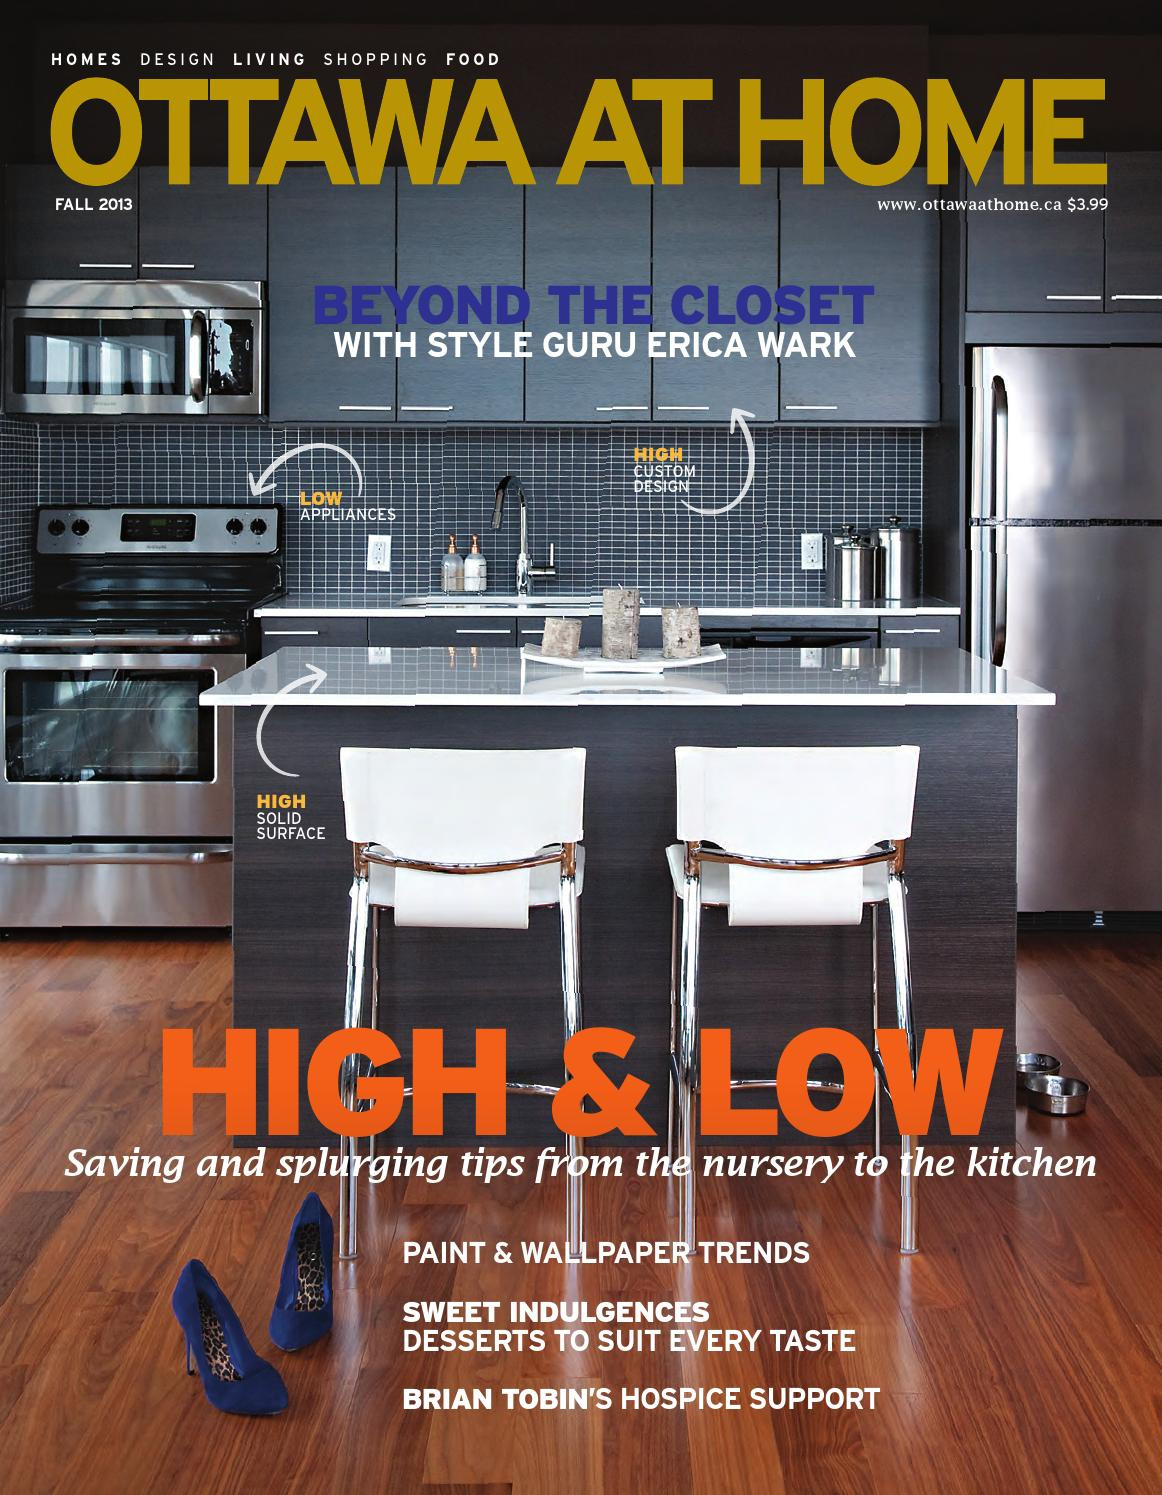 ottawa hardwood flooring stores of ottawa at home fall 2013 by great river media inc issuu throughout page 1